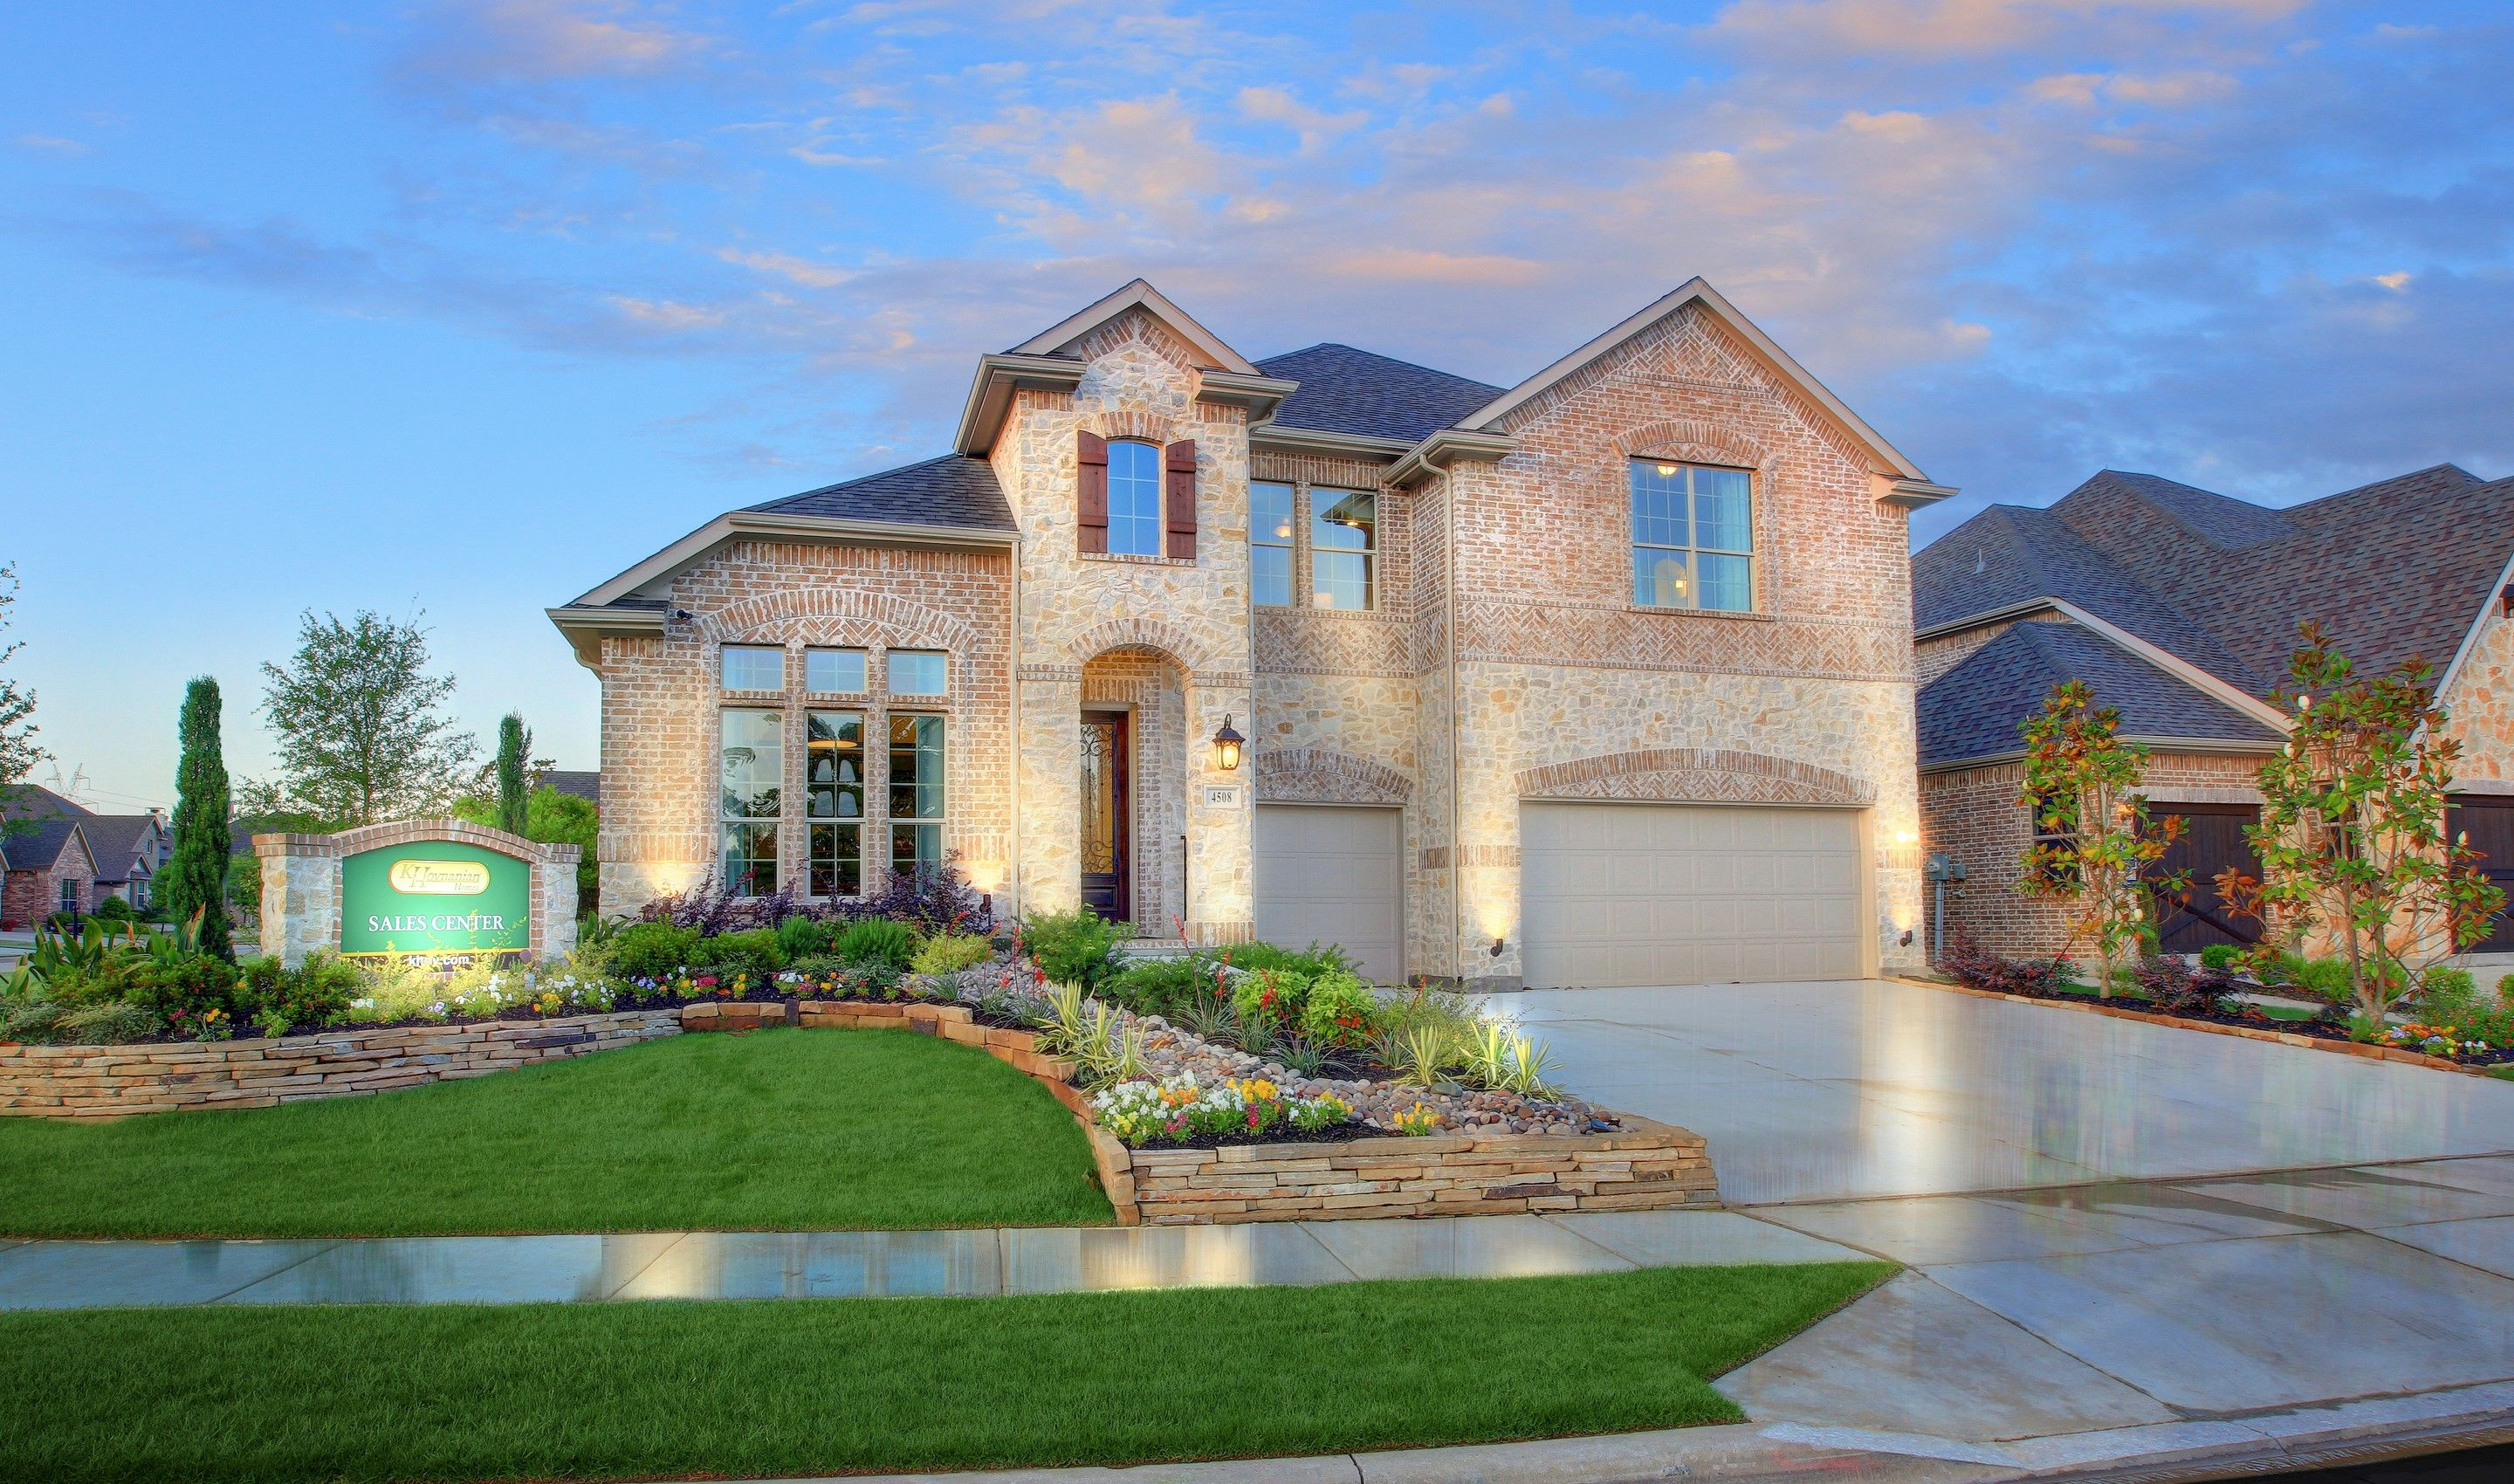 Single Family for Sale at Kingswood Ii 3006 Charles Drive, Homesite A-11 Wylie, Texas 75098 United States